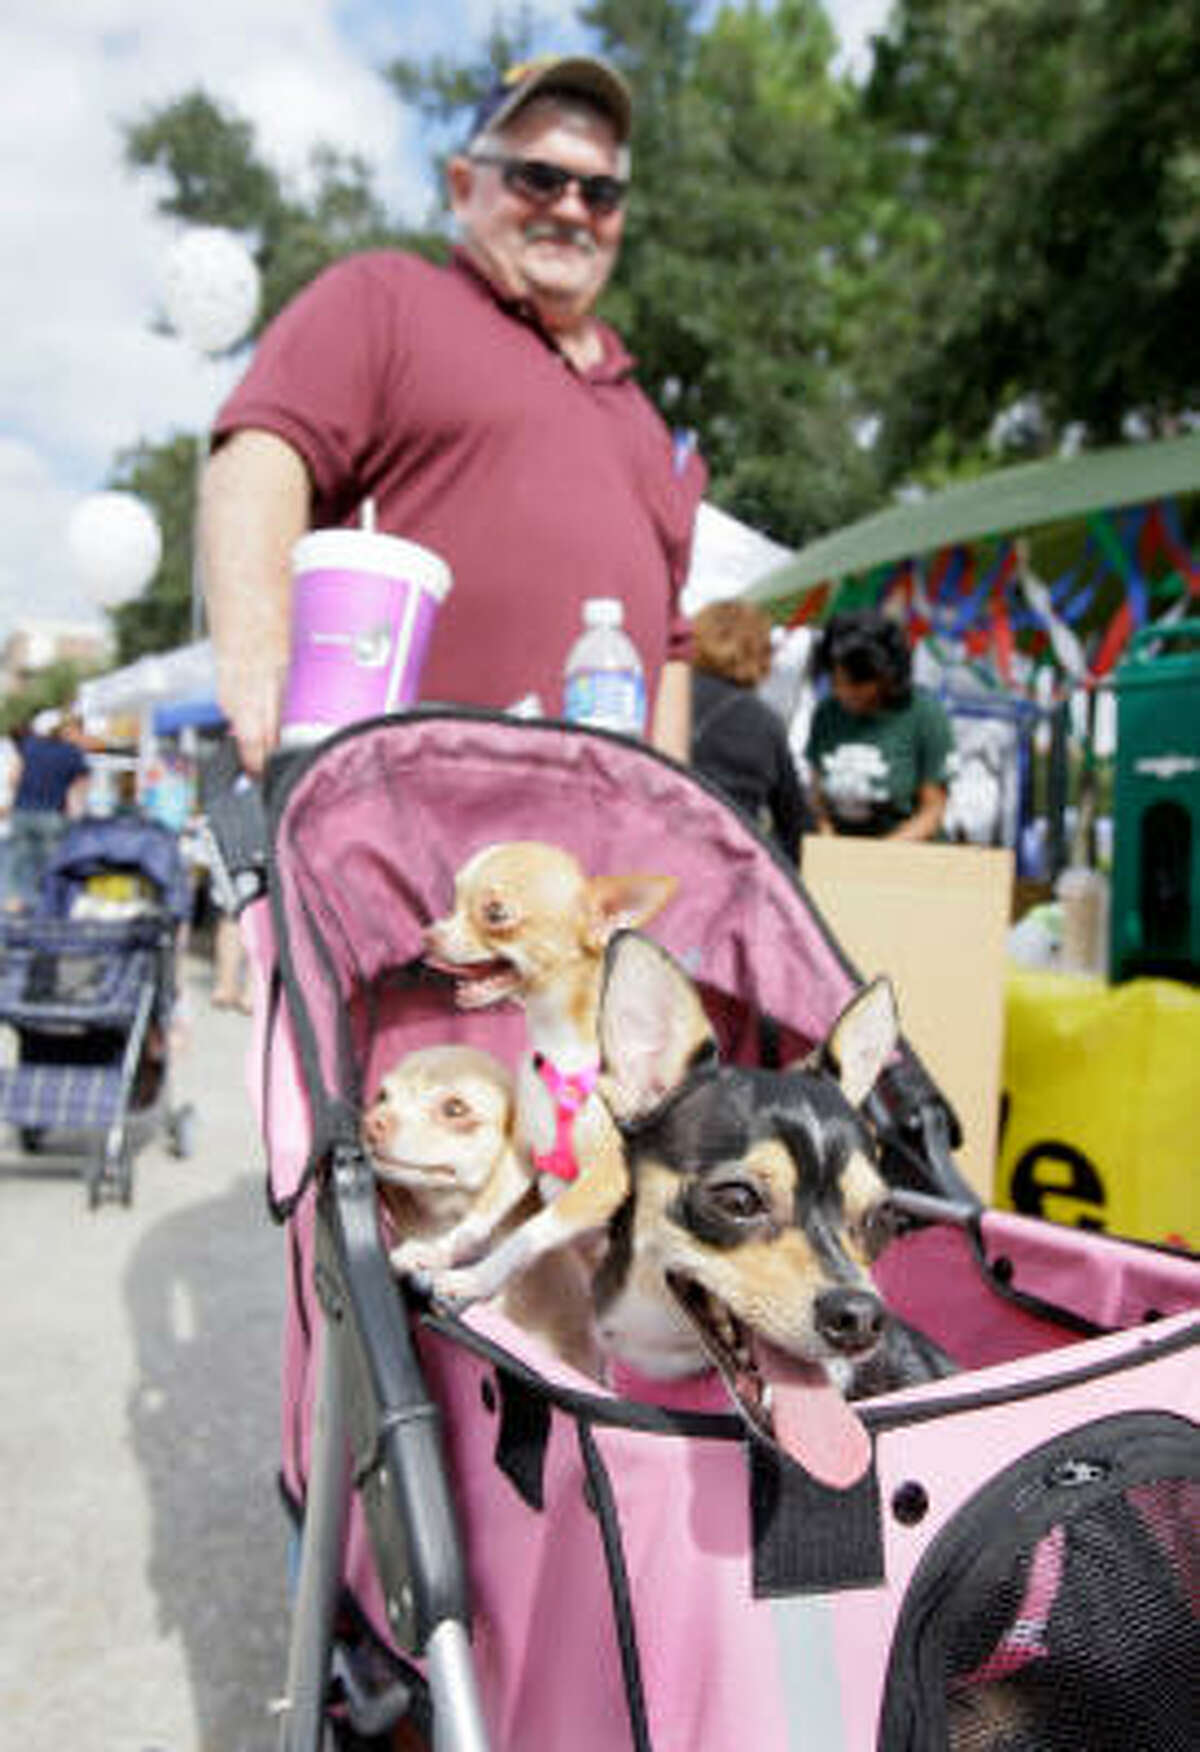 Pixie, Bella, and Tinkerbelle ride in a pet stroller as they are pushed around by owner Don Davis of Cleveland.